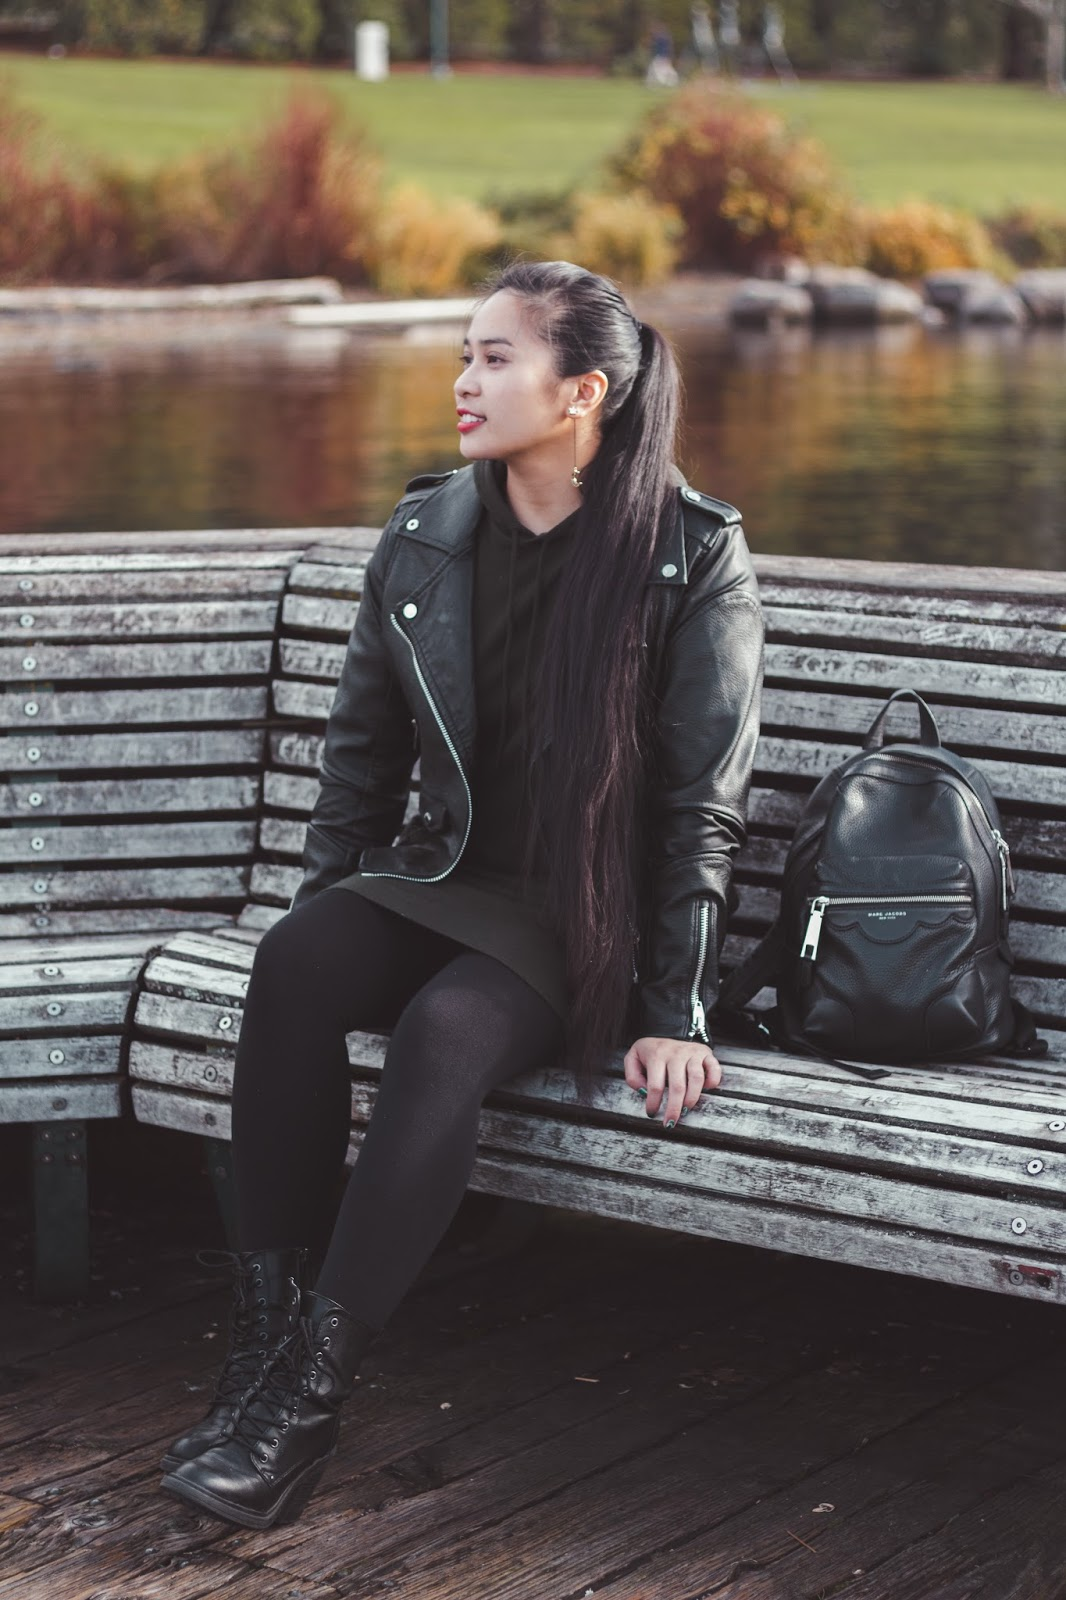 renton fashion outfit blogger seattle jacket forever 21 blanknyc michael kors backpack